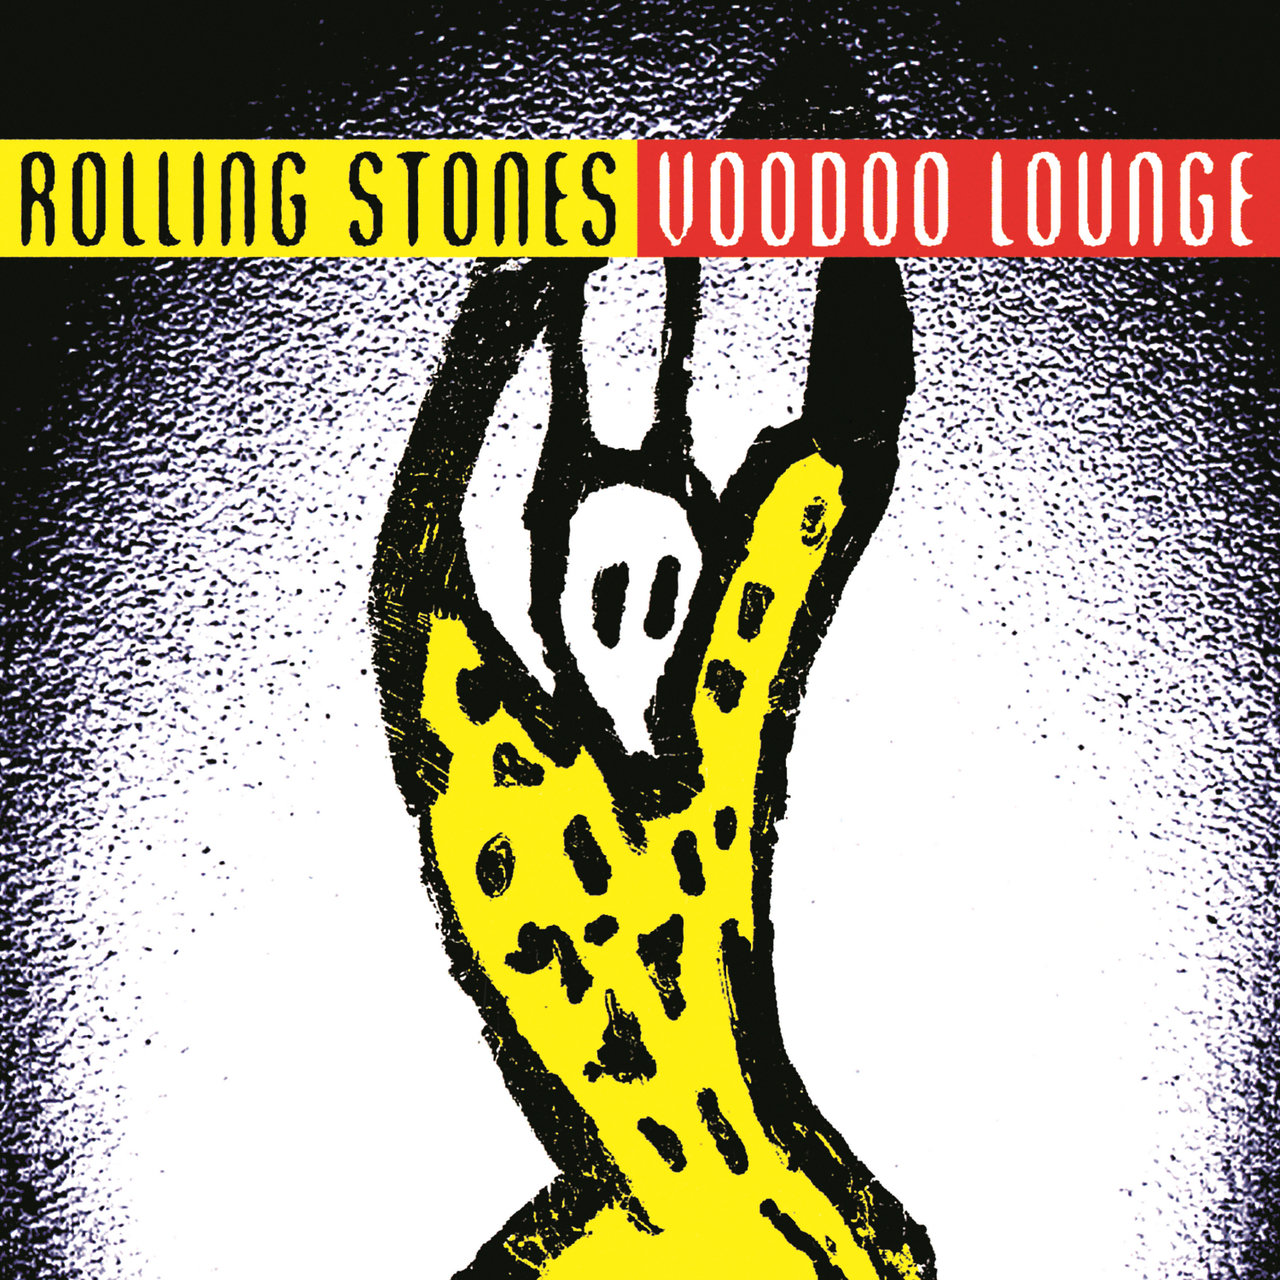 The Rolling Stones - Voodoo Lounge [2xLP]